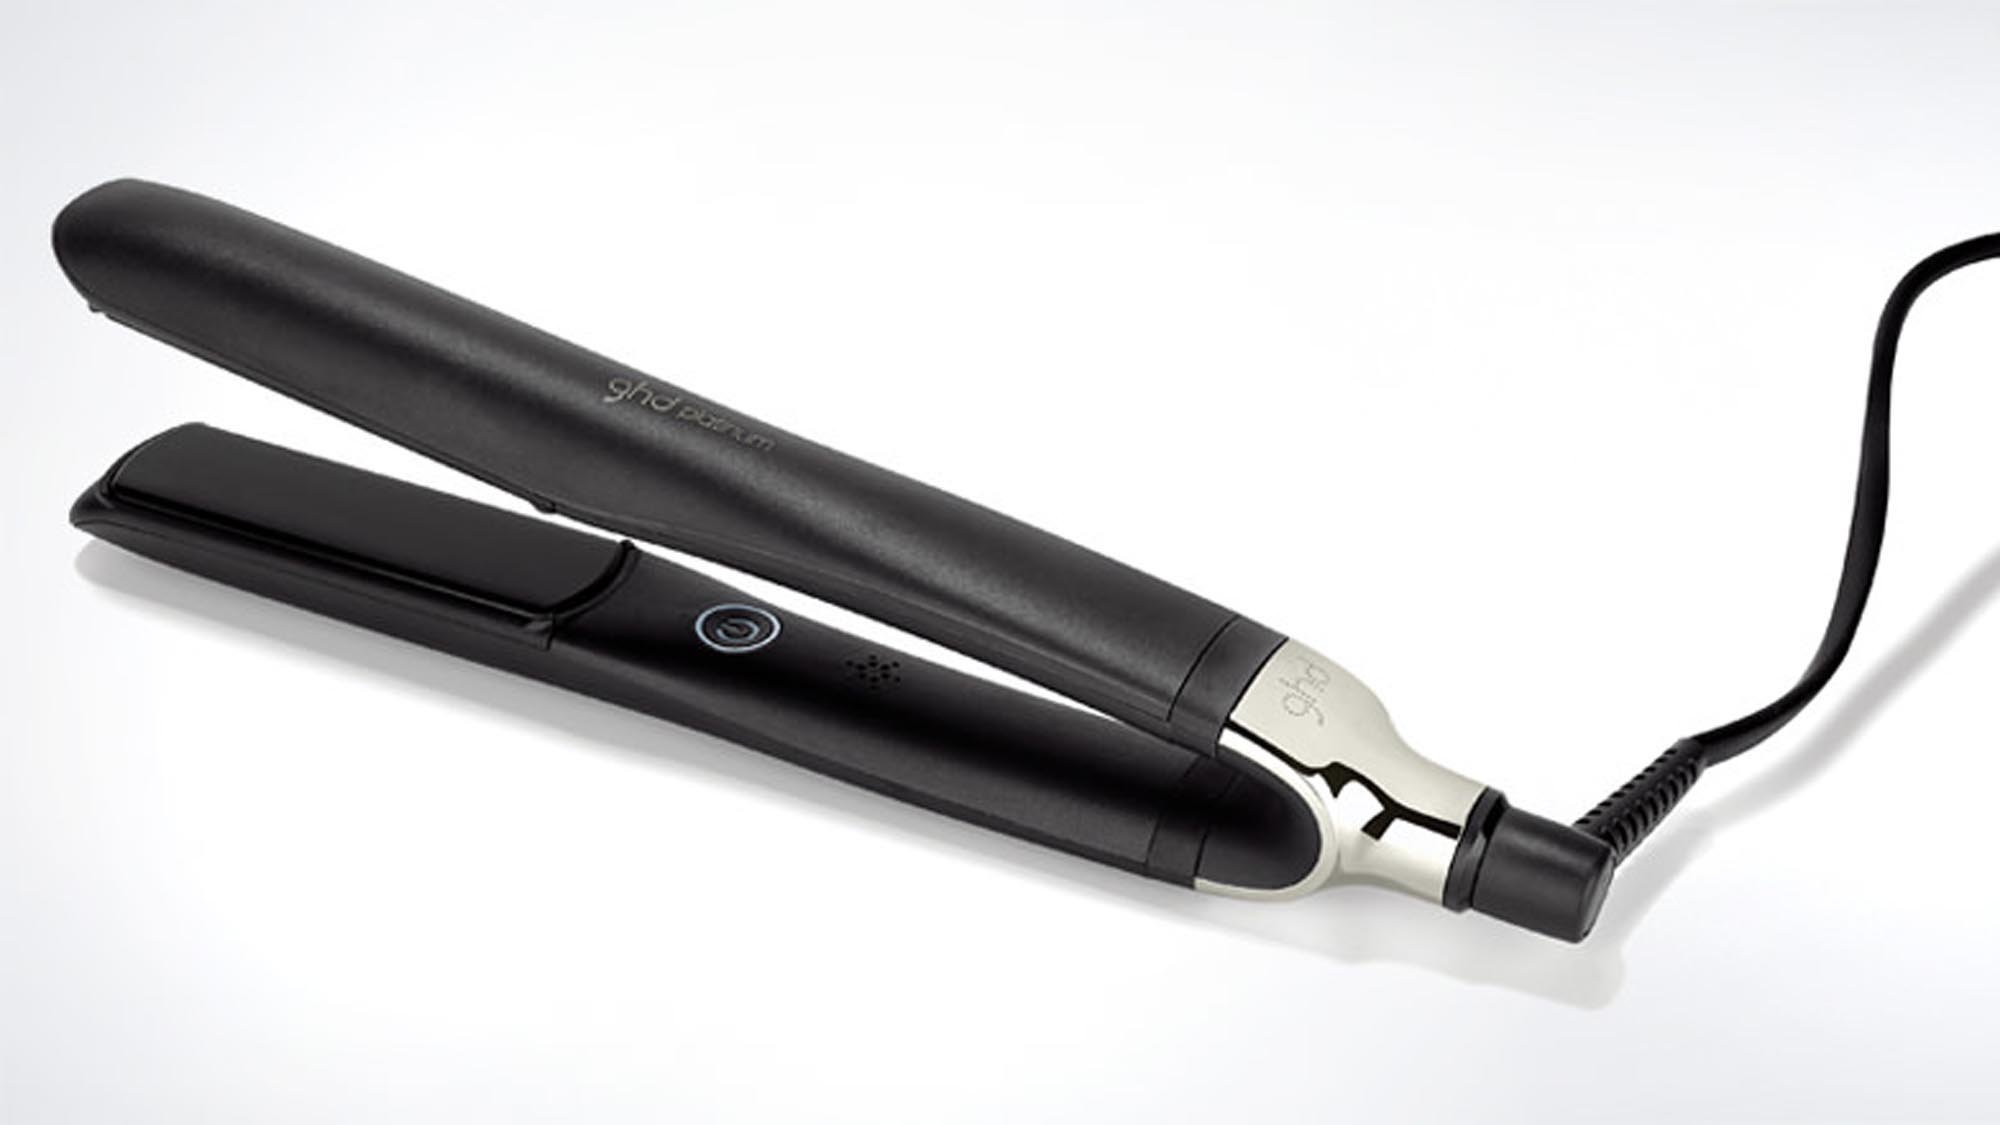 GHD sale  Get cheap GHD straighteners including the GHD Platinum and GHD  hair dryer in the Amazon sales  188170ad5c9